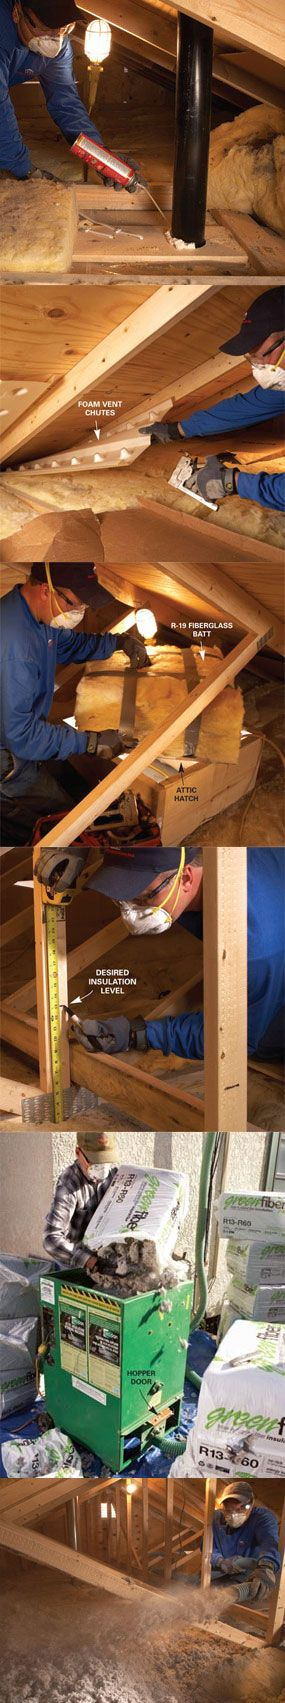 Learn how to install blown insulation at http://www.familyhandyman.com/DIY-Projects/Indoor-Projects/Attics/Attic-Insulation/saving-energy-blown-attic-insulation/View-All